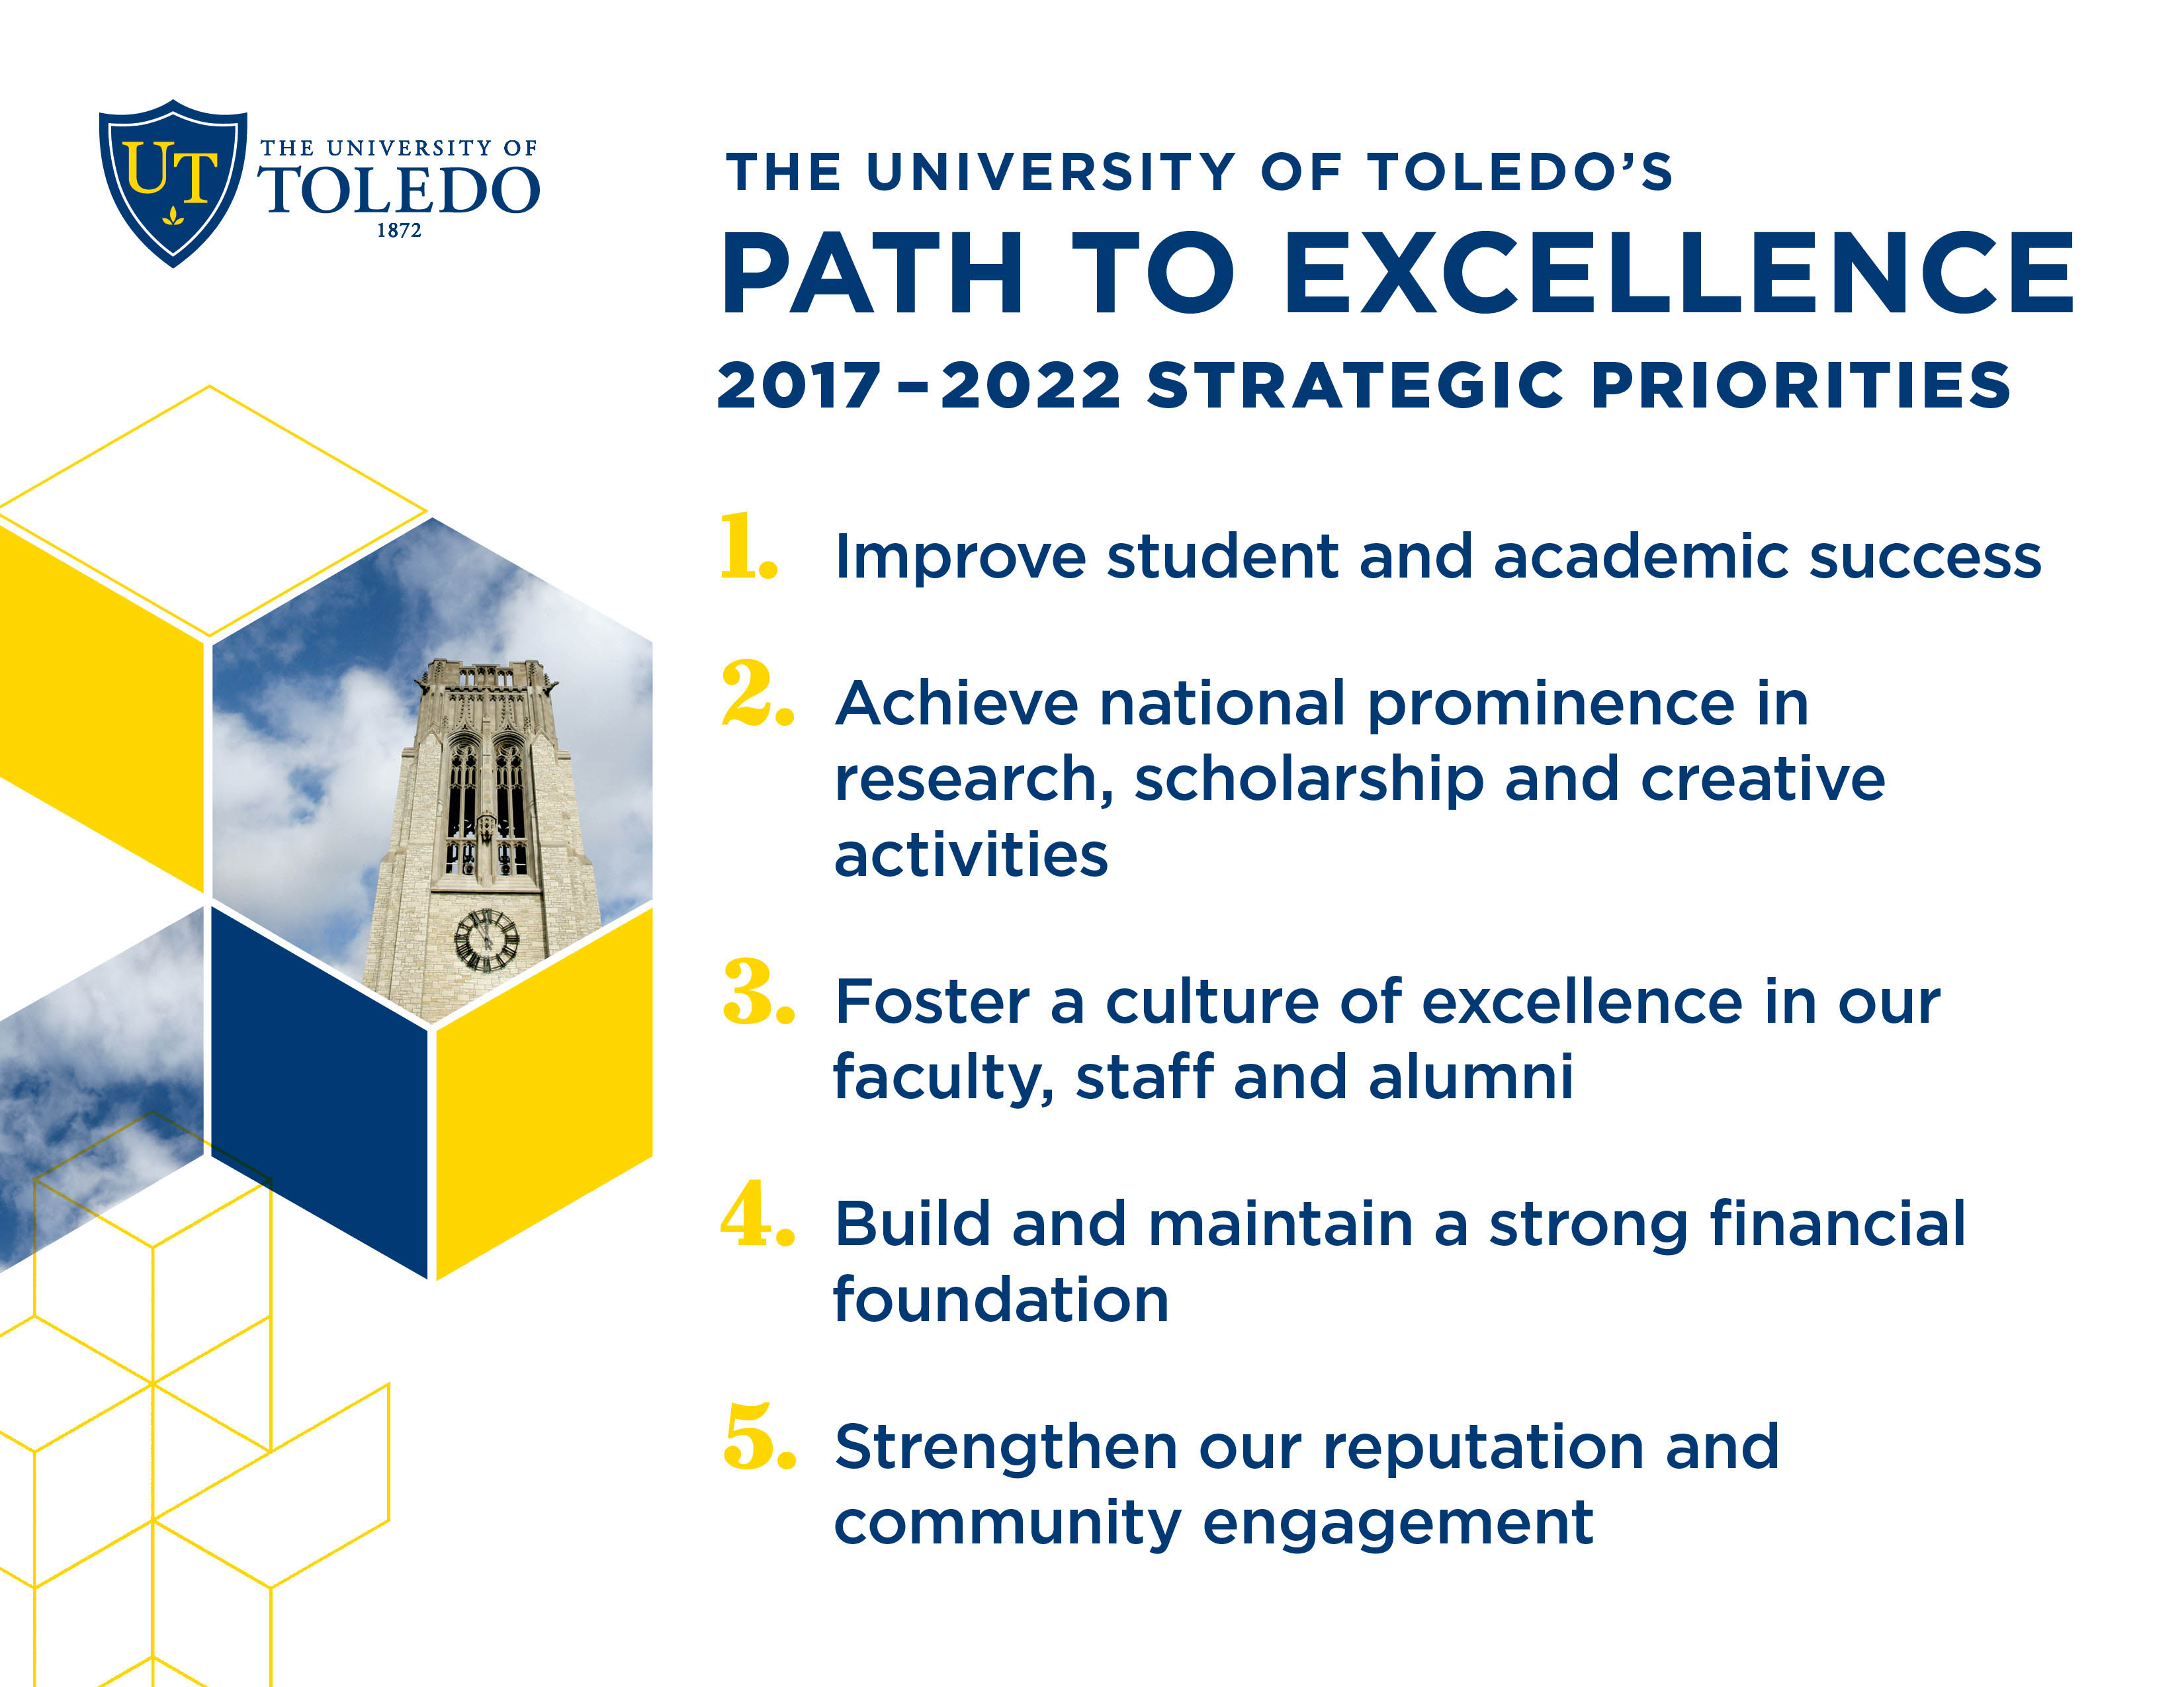 UT's Path to Excellence 2017-2022 Strategic Priorities 1. Improve student  and academic success 2. Achieve national prominence in research, scholarship and creative activities 3. Foster a culture of excellence in our faculty, staff and alumni 4. Build and maintain a strong financial foundation 5. Strengthen our reputation and community engagement